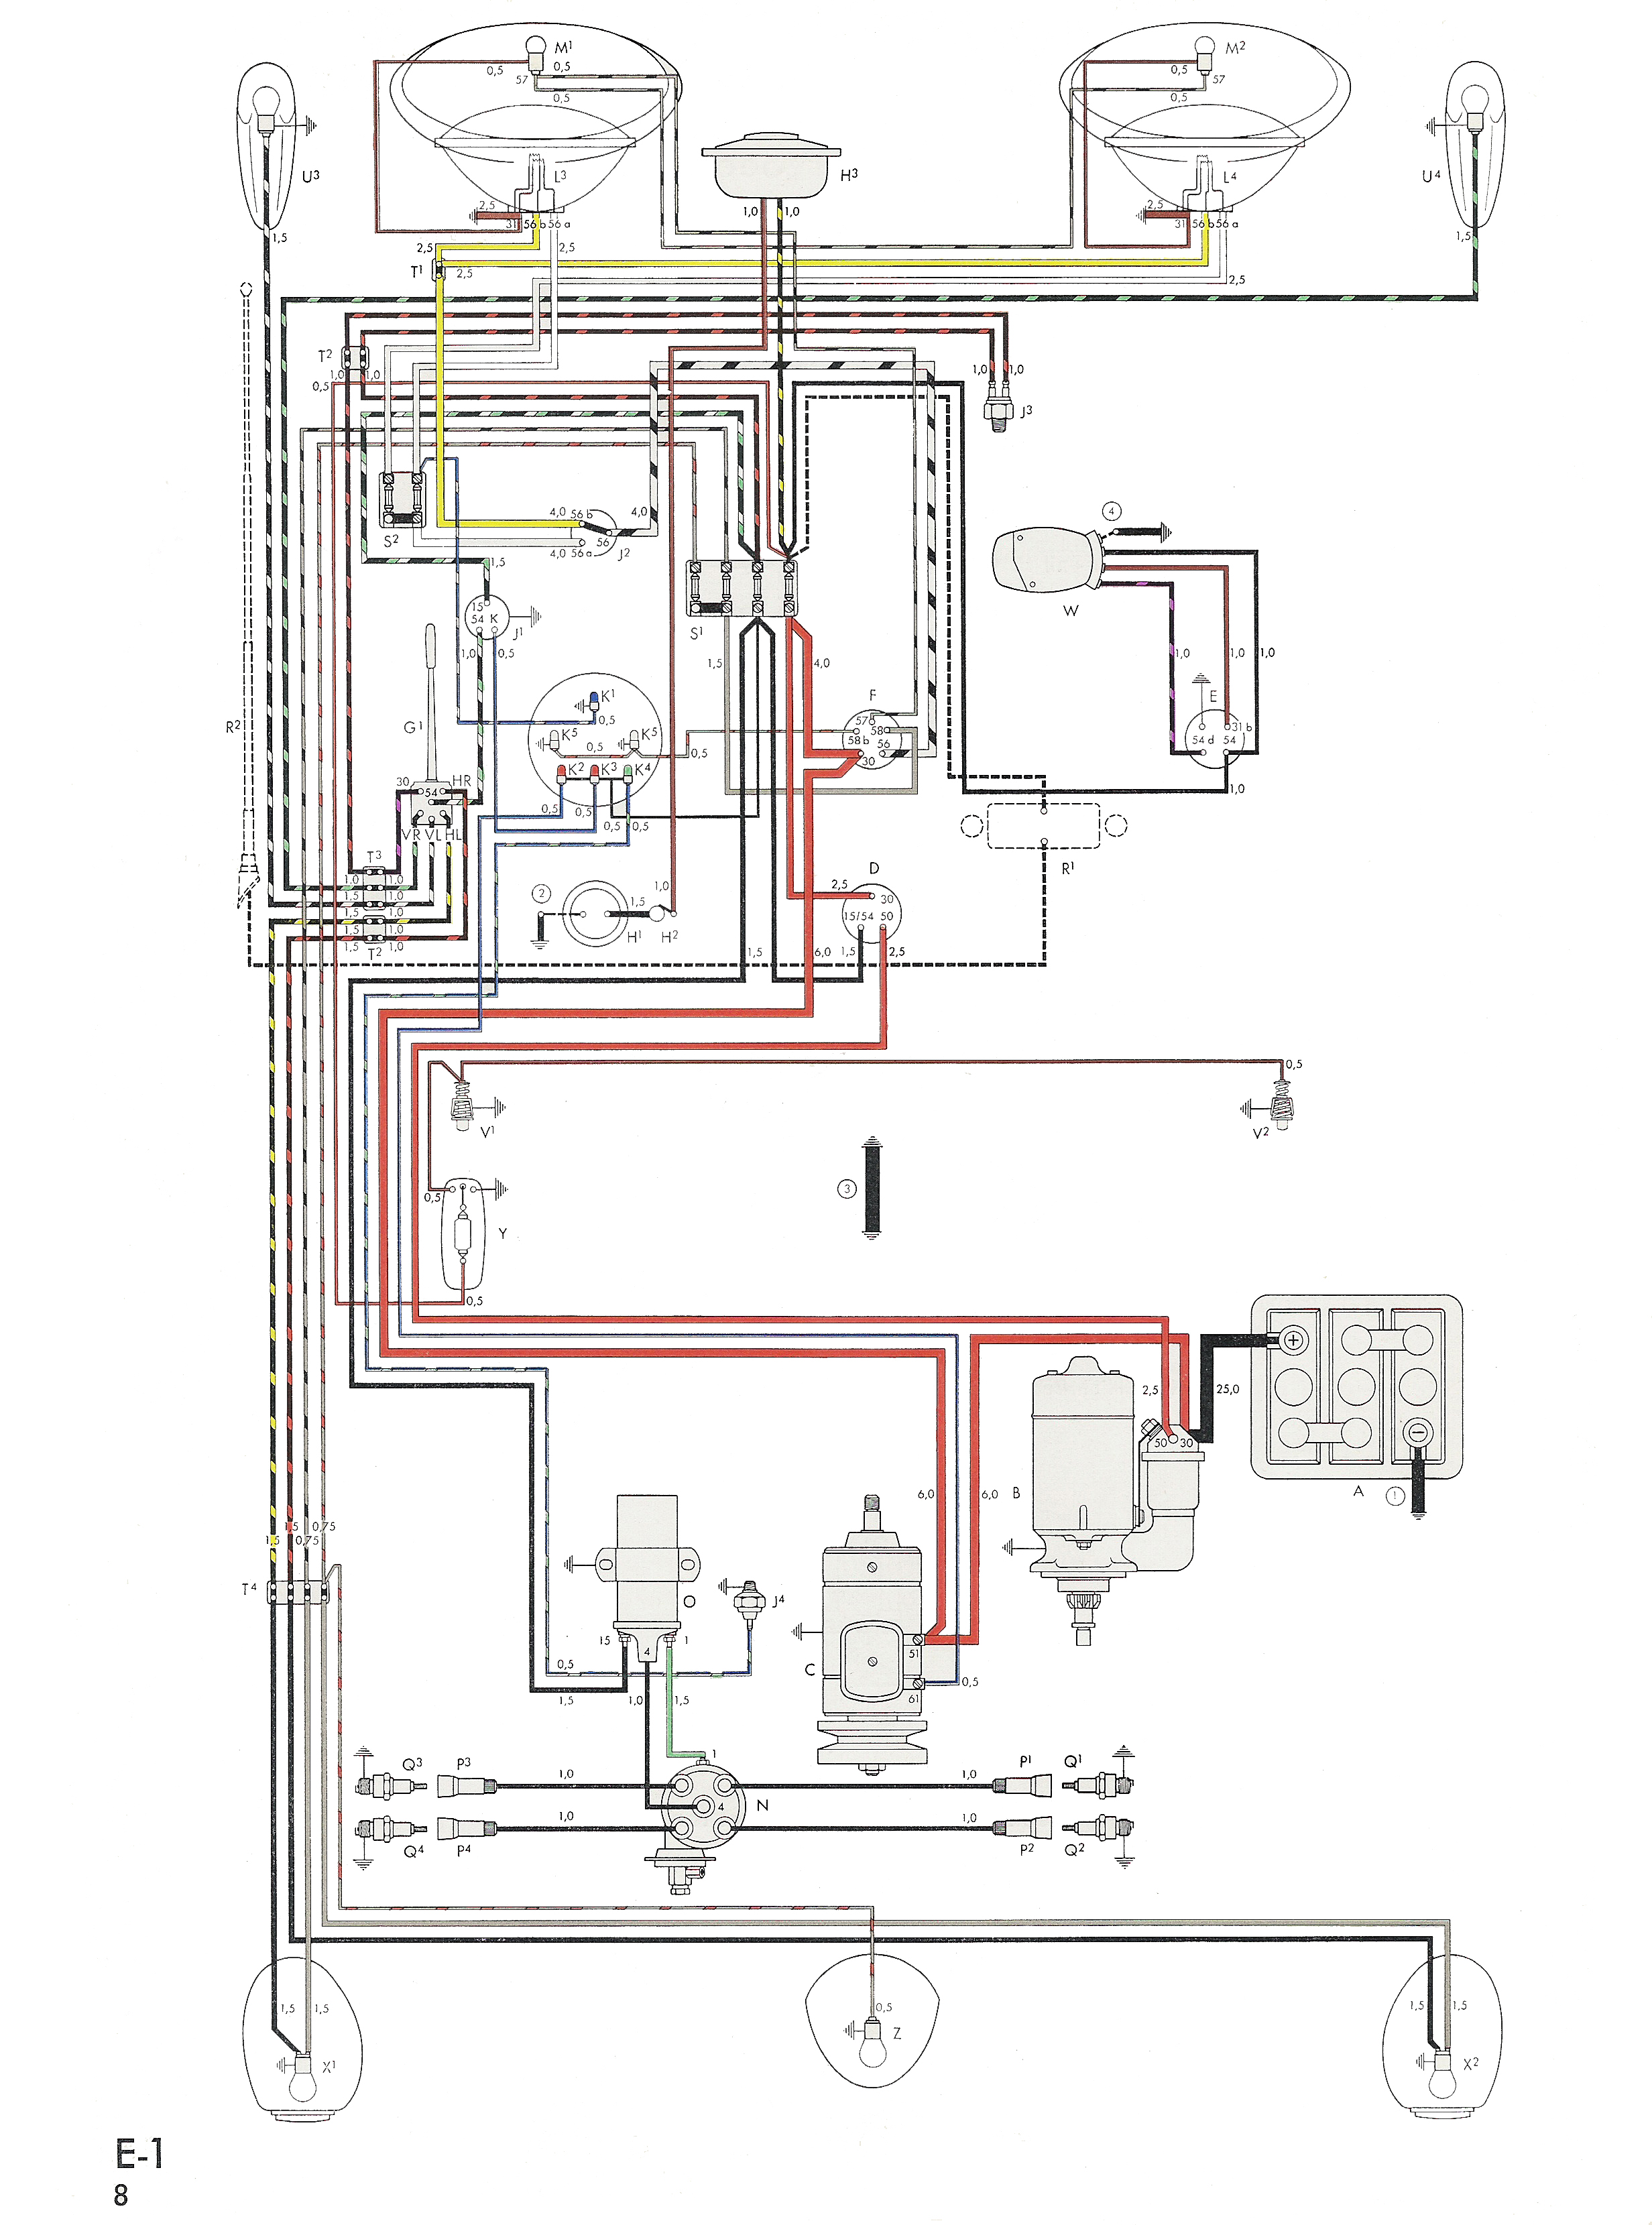 bug_58_USA_300dpi thesamba com type 1 wiring diagrams